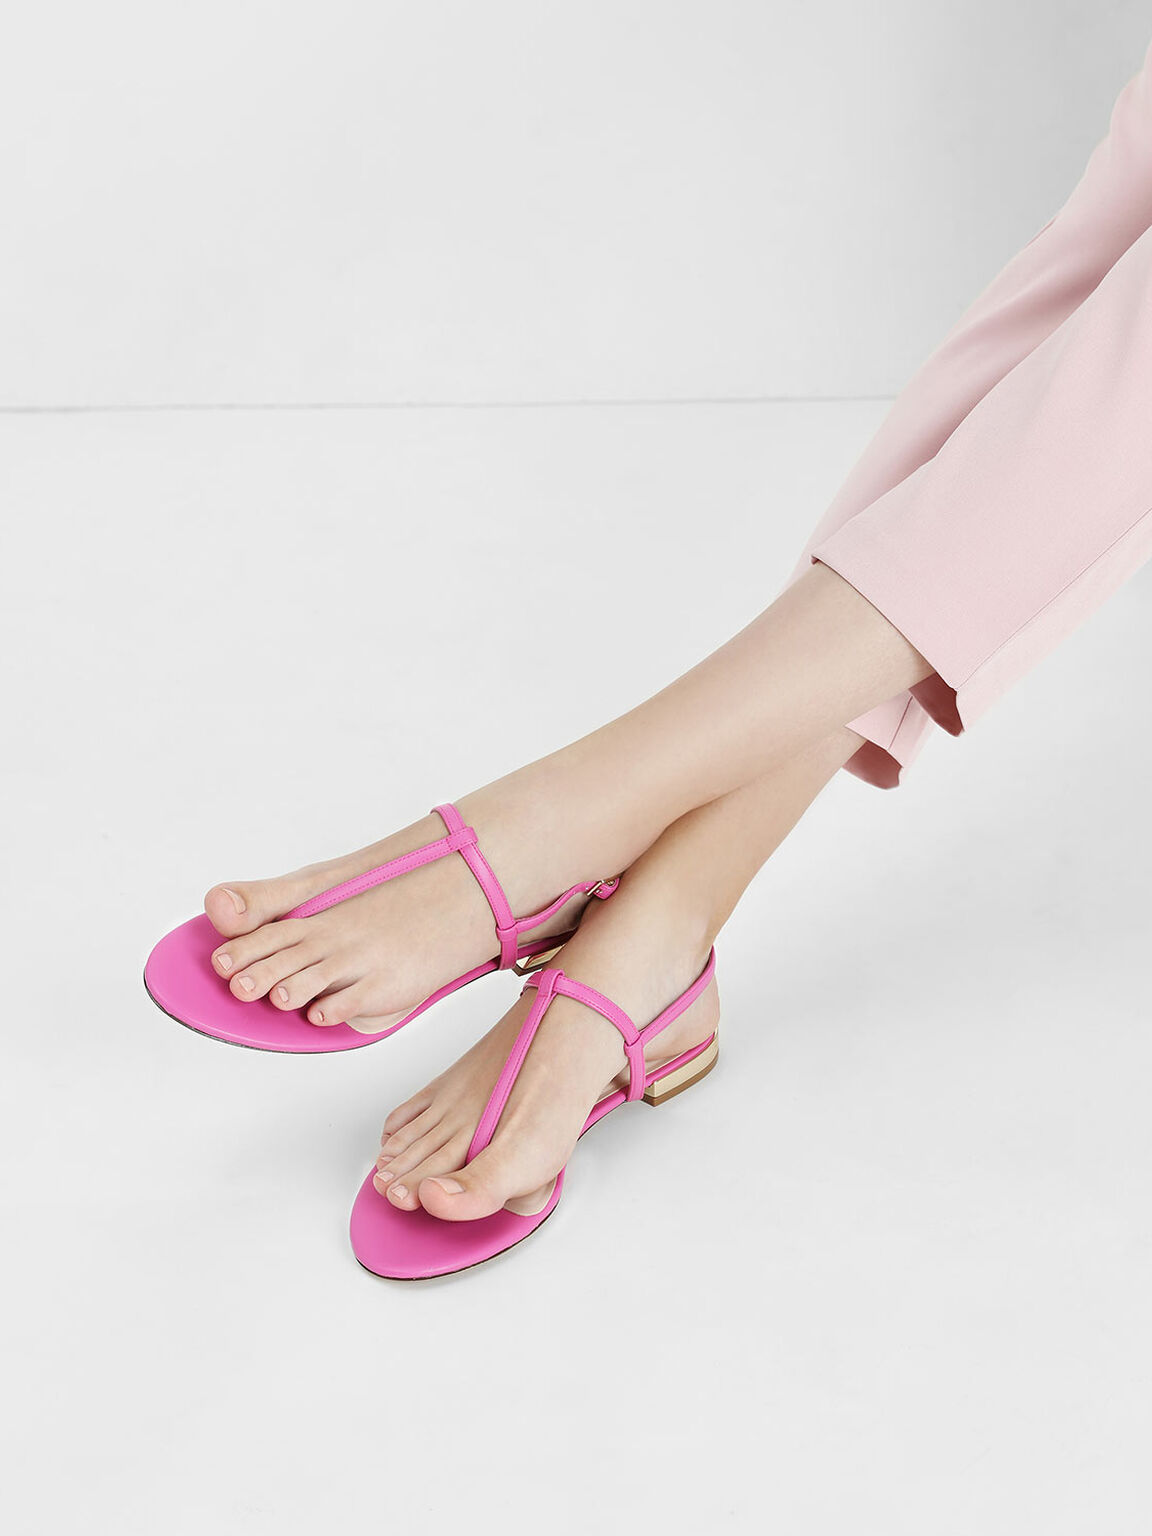 Gold Mini Heel T-bar Sandals, Fuchsia, hi-res